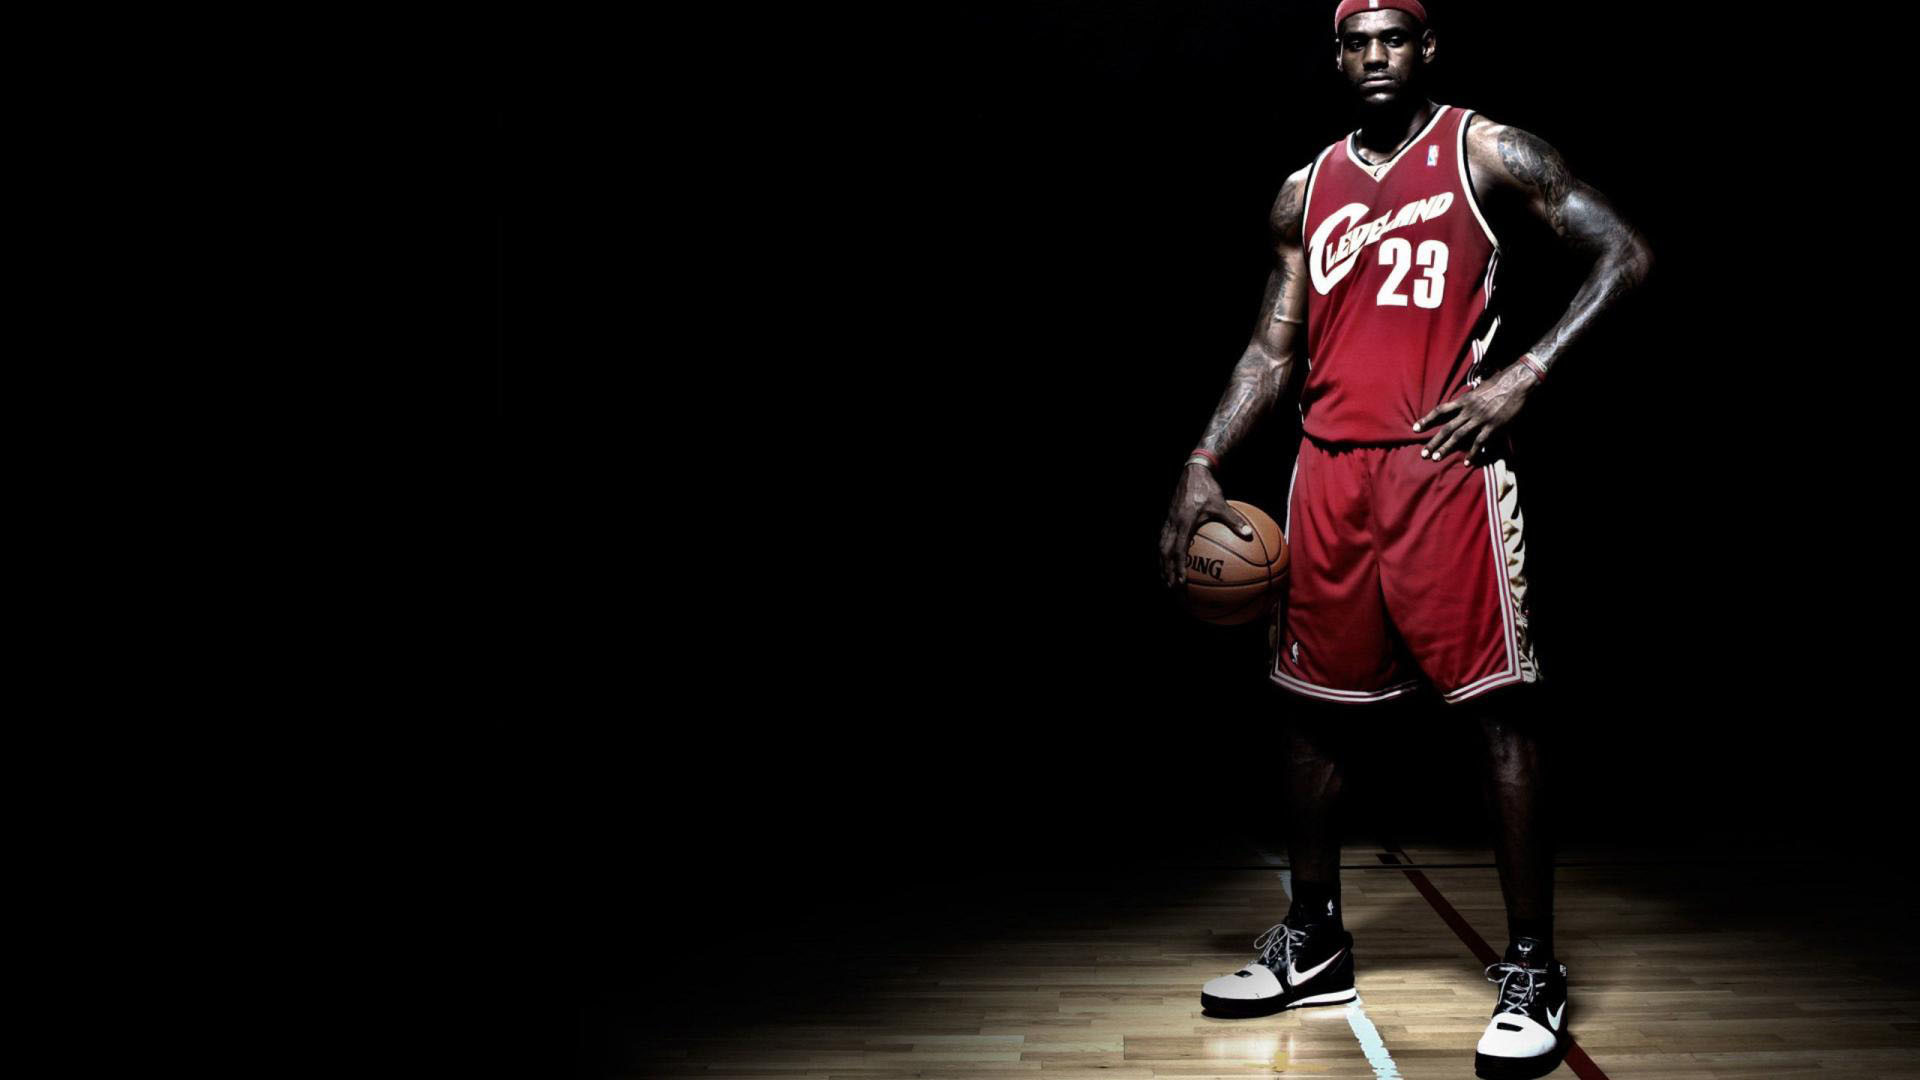 1920x1080 LeBron James desktop